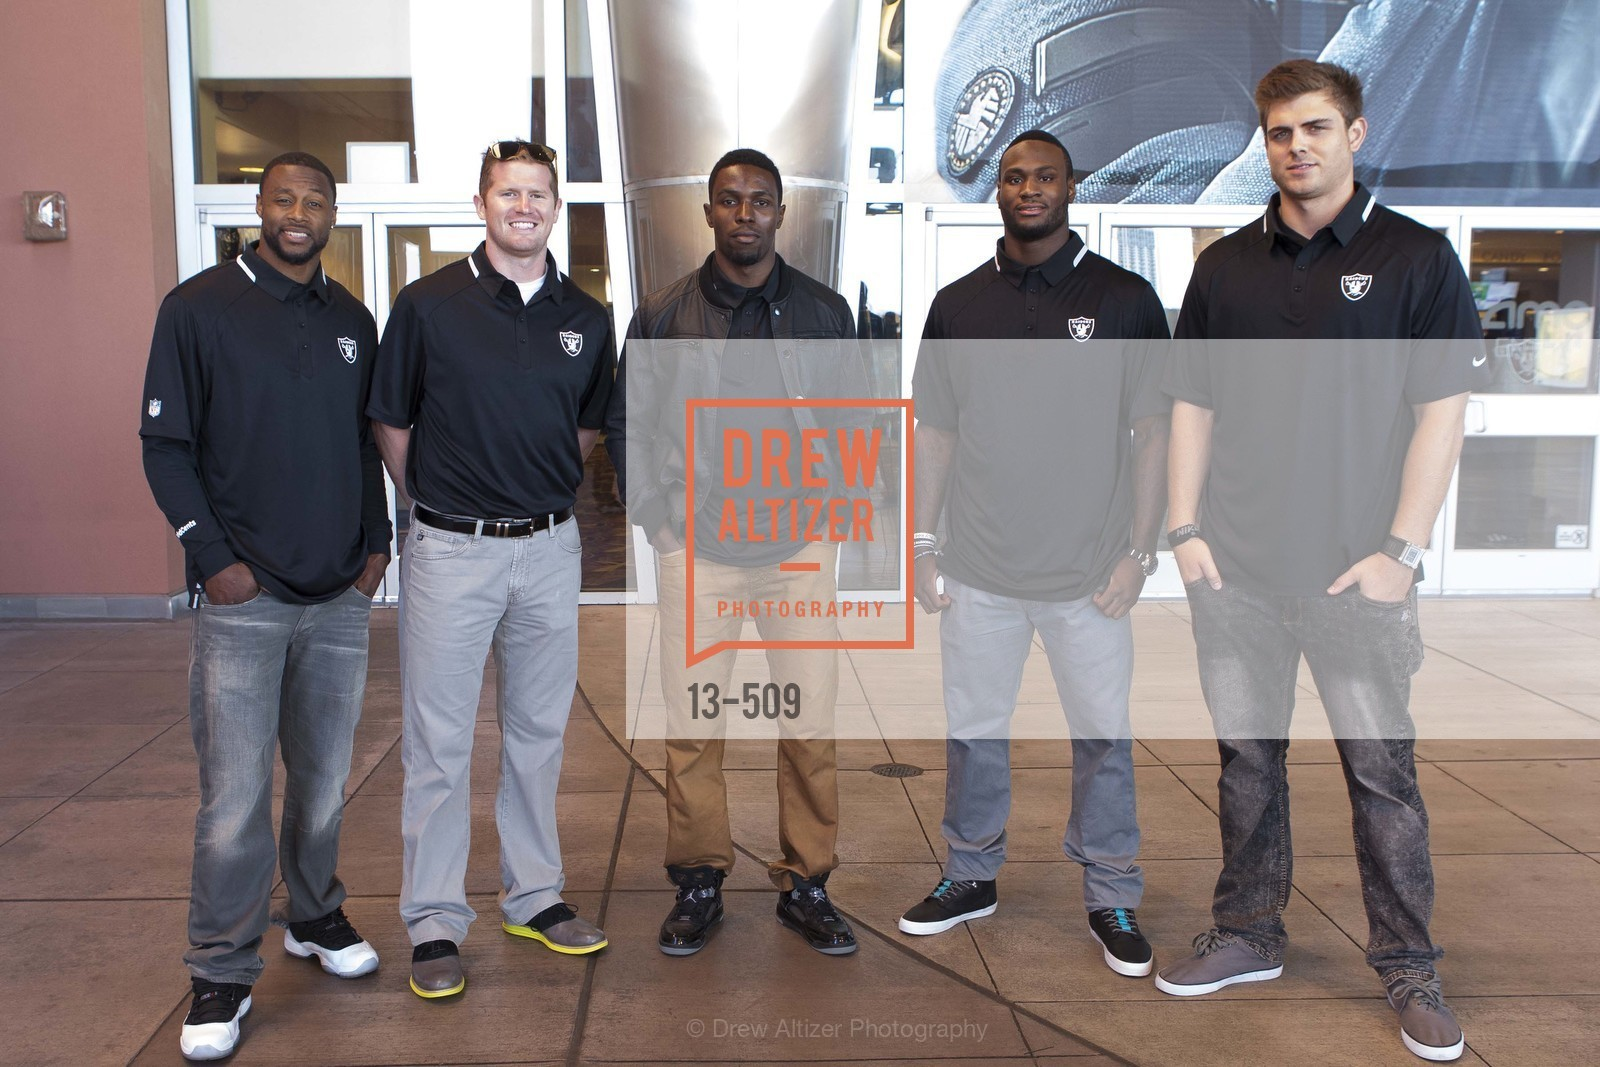 Taiwan Jones, Matthew McGloin, Chimdi Chekwa, Latavius Murray, Nick Kasa, SUMMIT ENTERTAINMENT Presents a Special Screening of DRAFT DAY with the Oakland Raiders, US. AMC 16 Shellmound, Emeryville, Ca, April 9th, 2014,Drew Altizer, Drew Altizer Photography, full-service event agency, private events, San Francisco photographer, photographer California